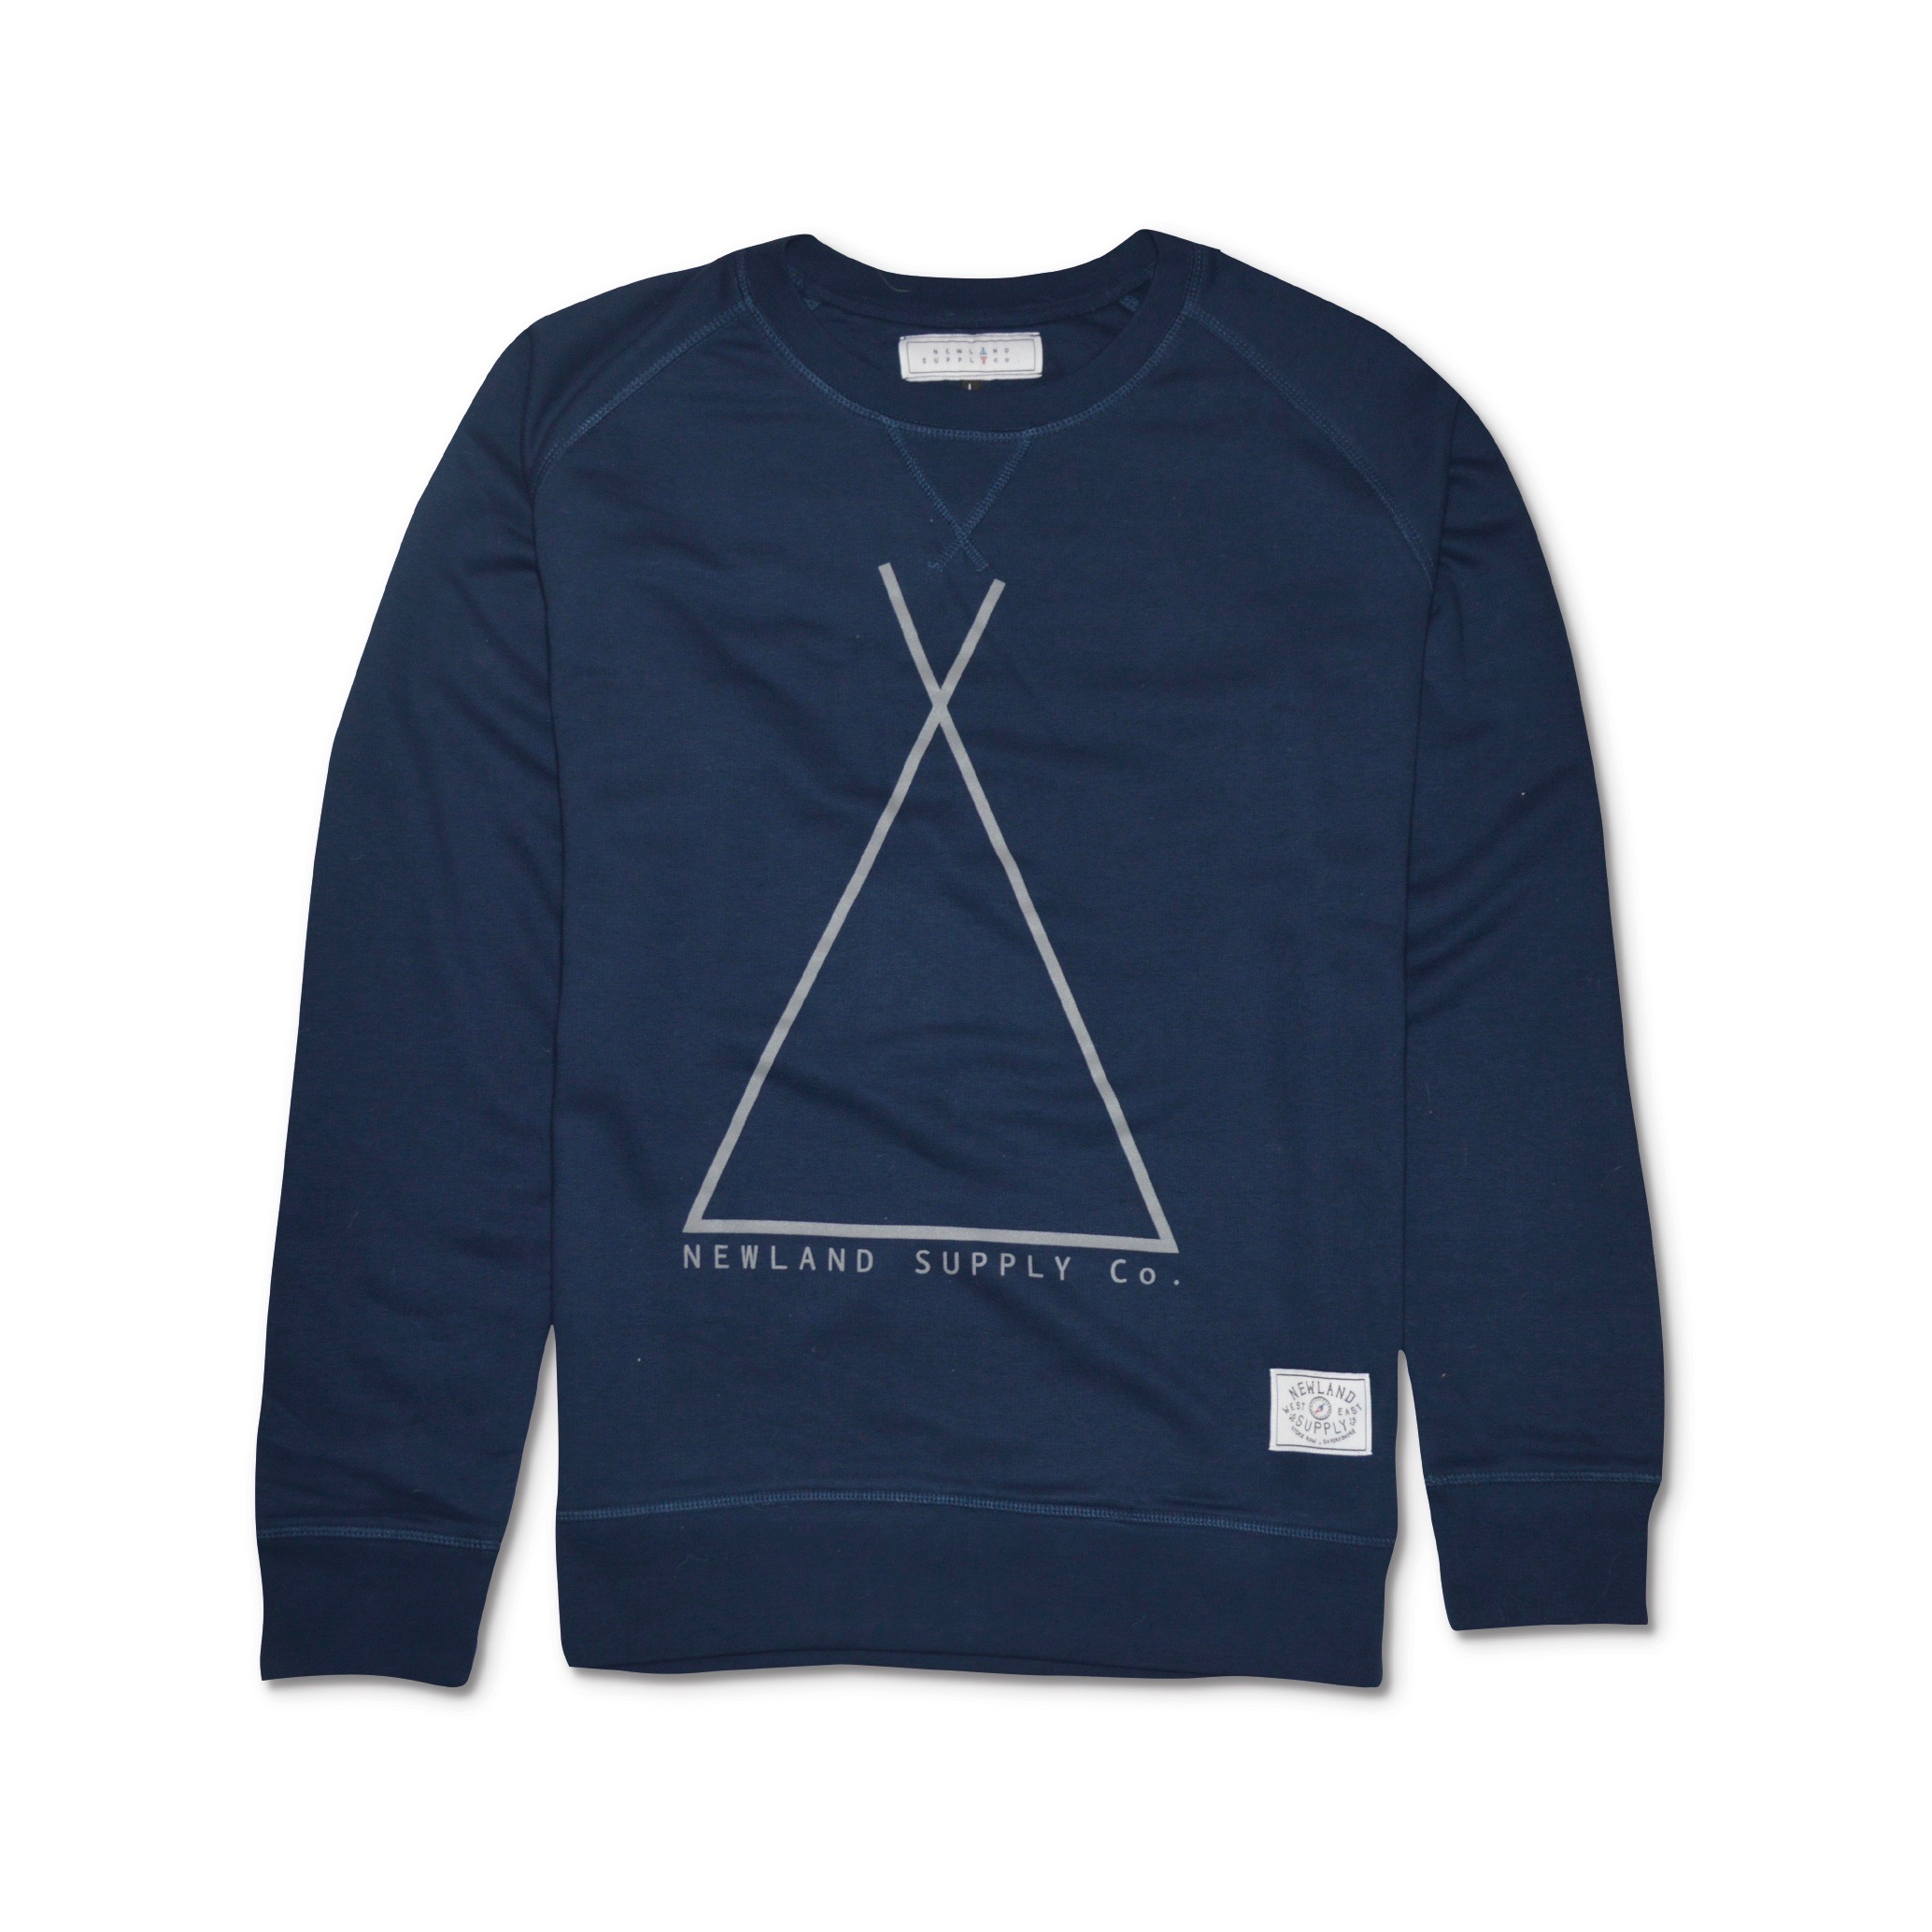 BUSGROVE SWEATSHIRT    By  Newland Supply Co.     The perfect top layer over a tee or as a base layer under a jacket.    SHOP NOW    £30  ON SALE